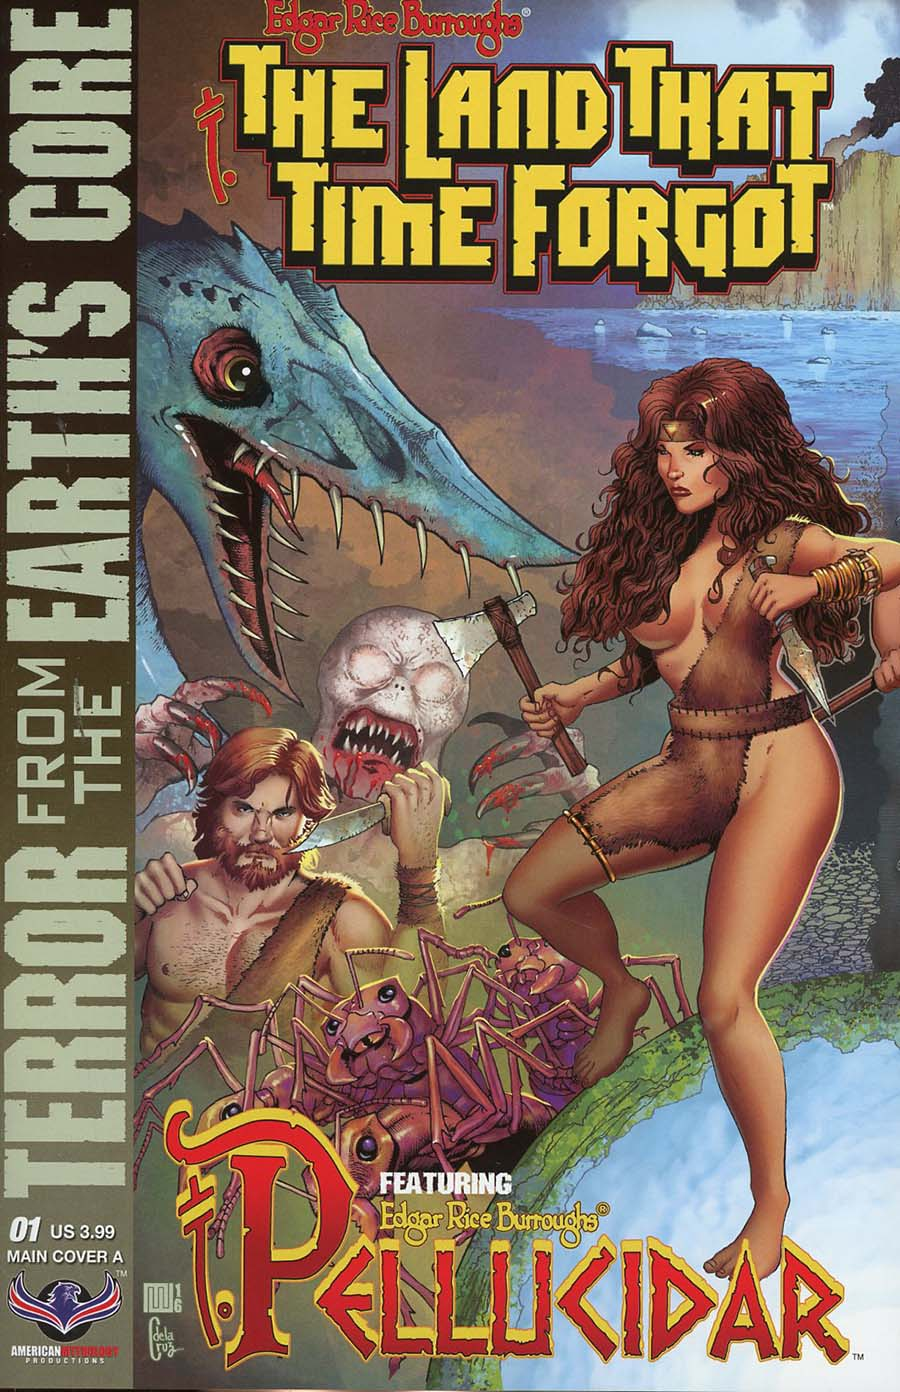 Edgar Rice Burroughs Land That Time Forgot Terror From The Earths Core #1 Cover A Regular Mike Wolfer Connecting Cover